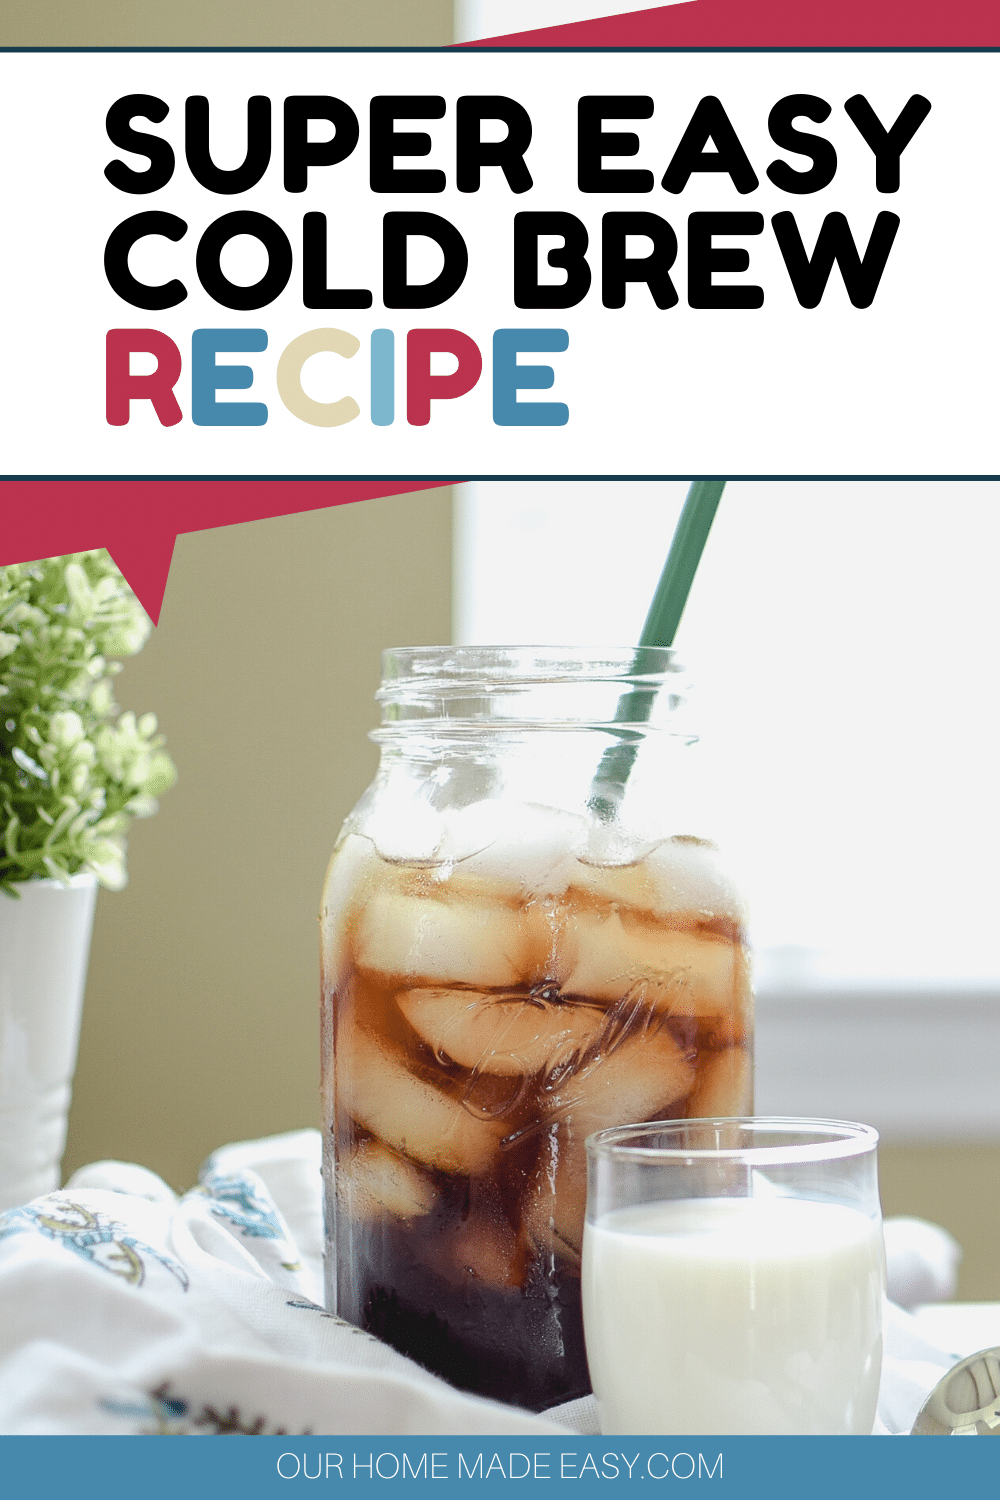 Here's how to make cold brew coffee at home with a simple overnight recipe.